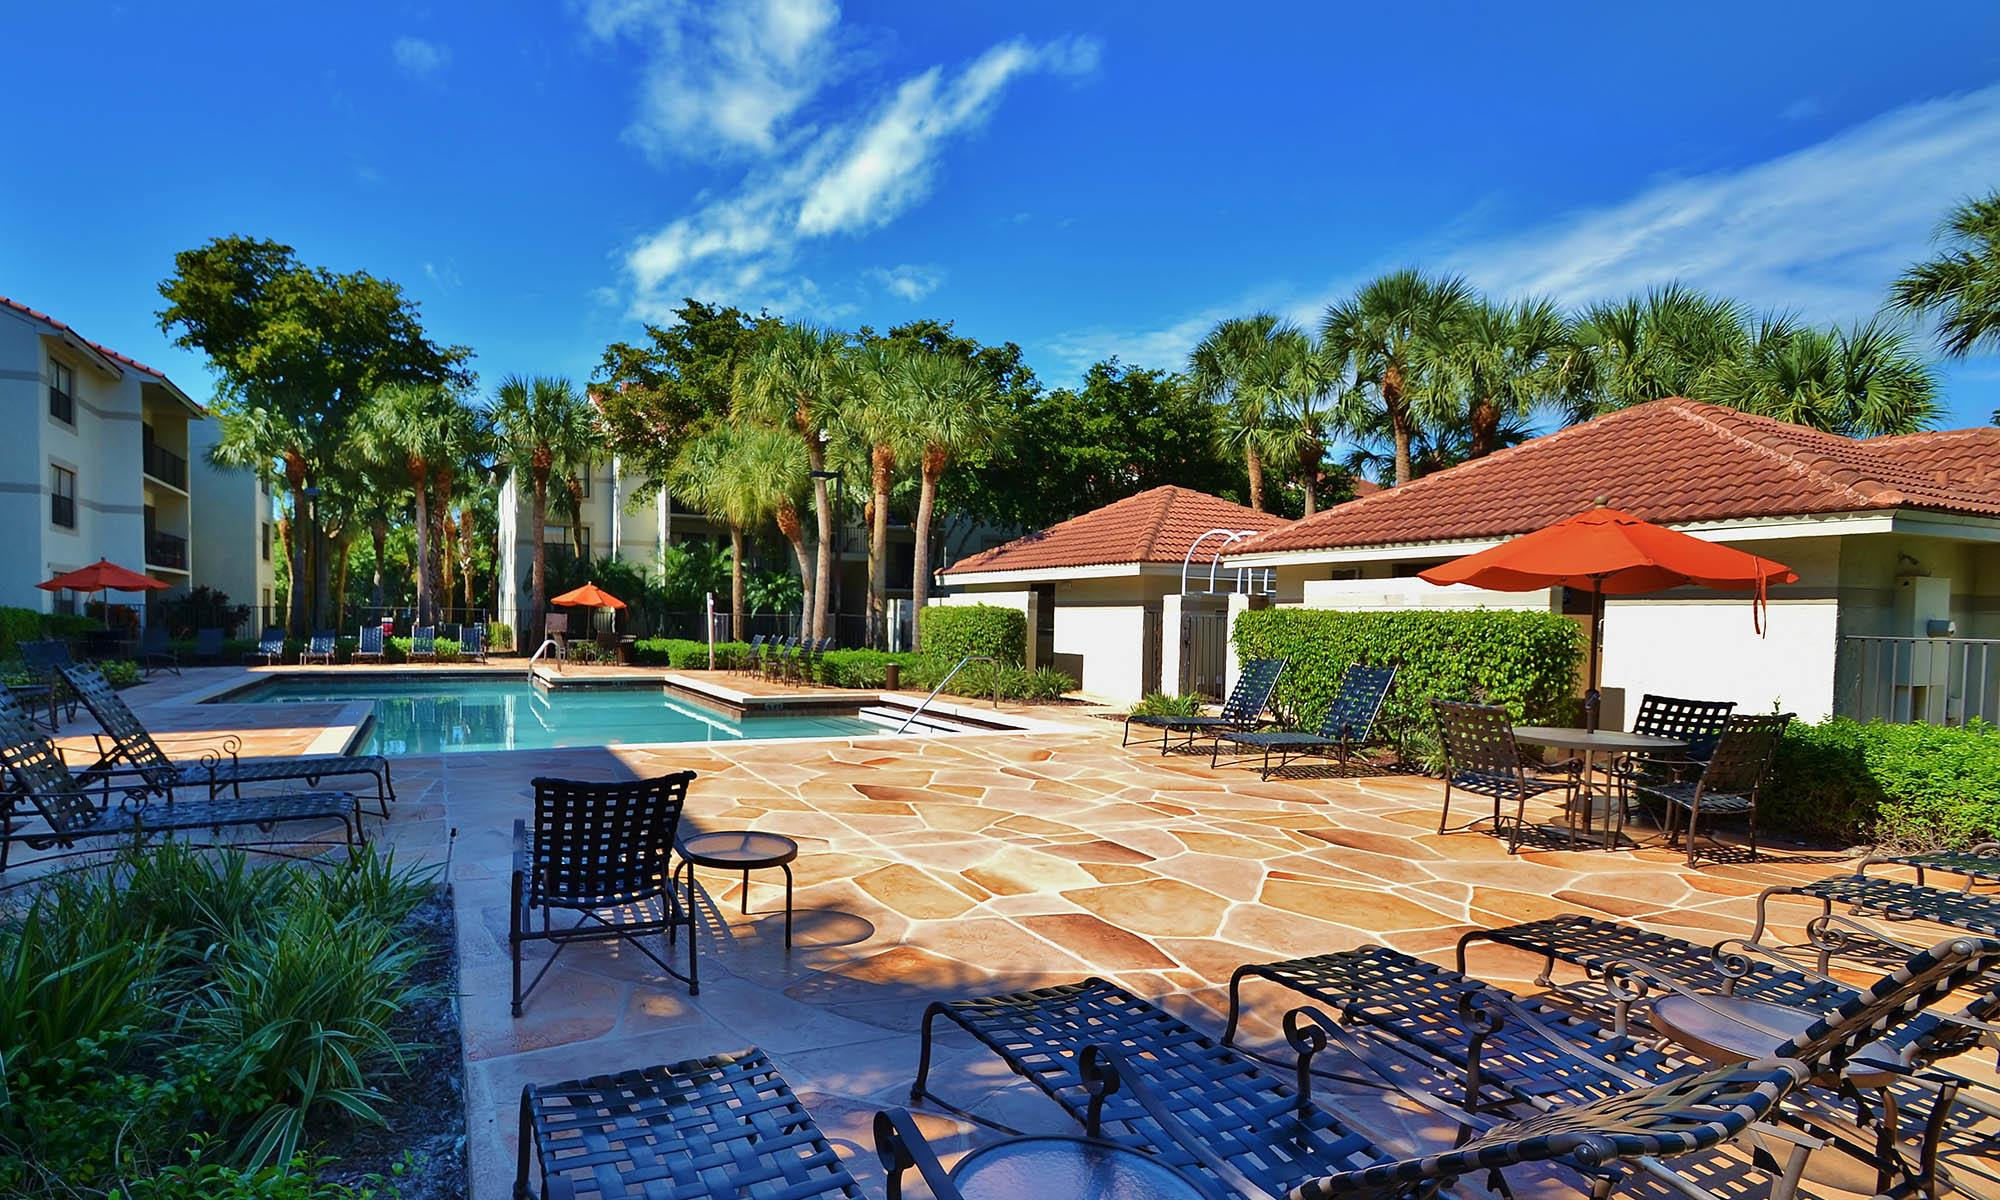 Welcome to Ashley Lake Park Apartments in Boynton Beach, FL